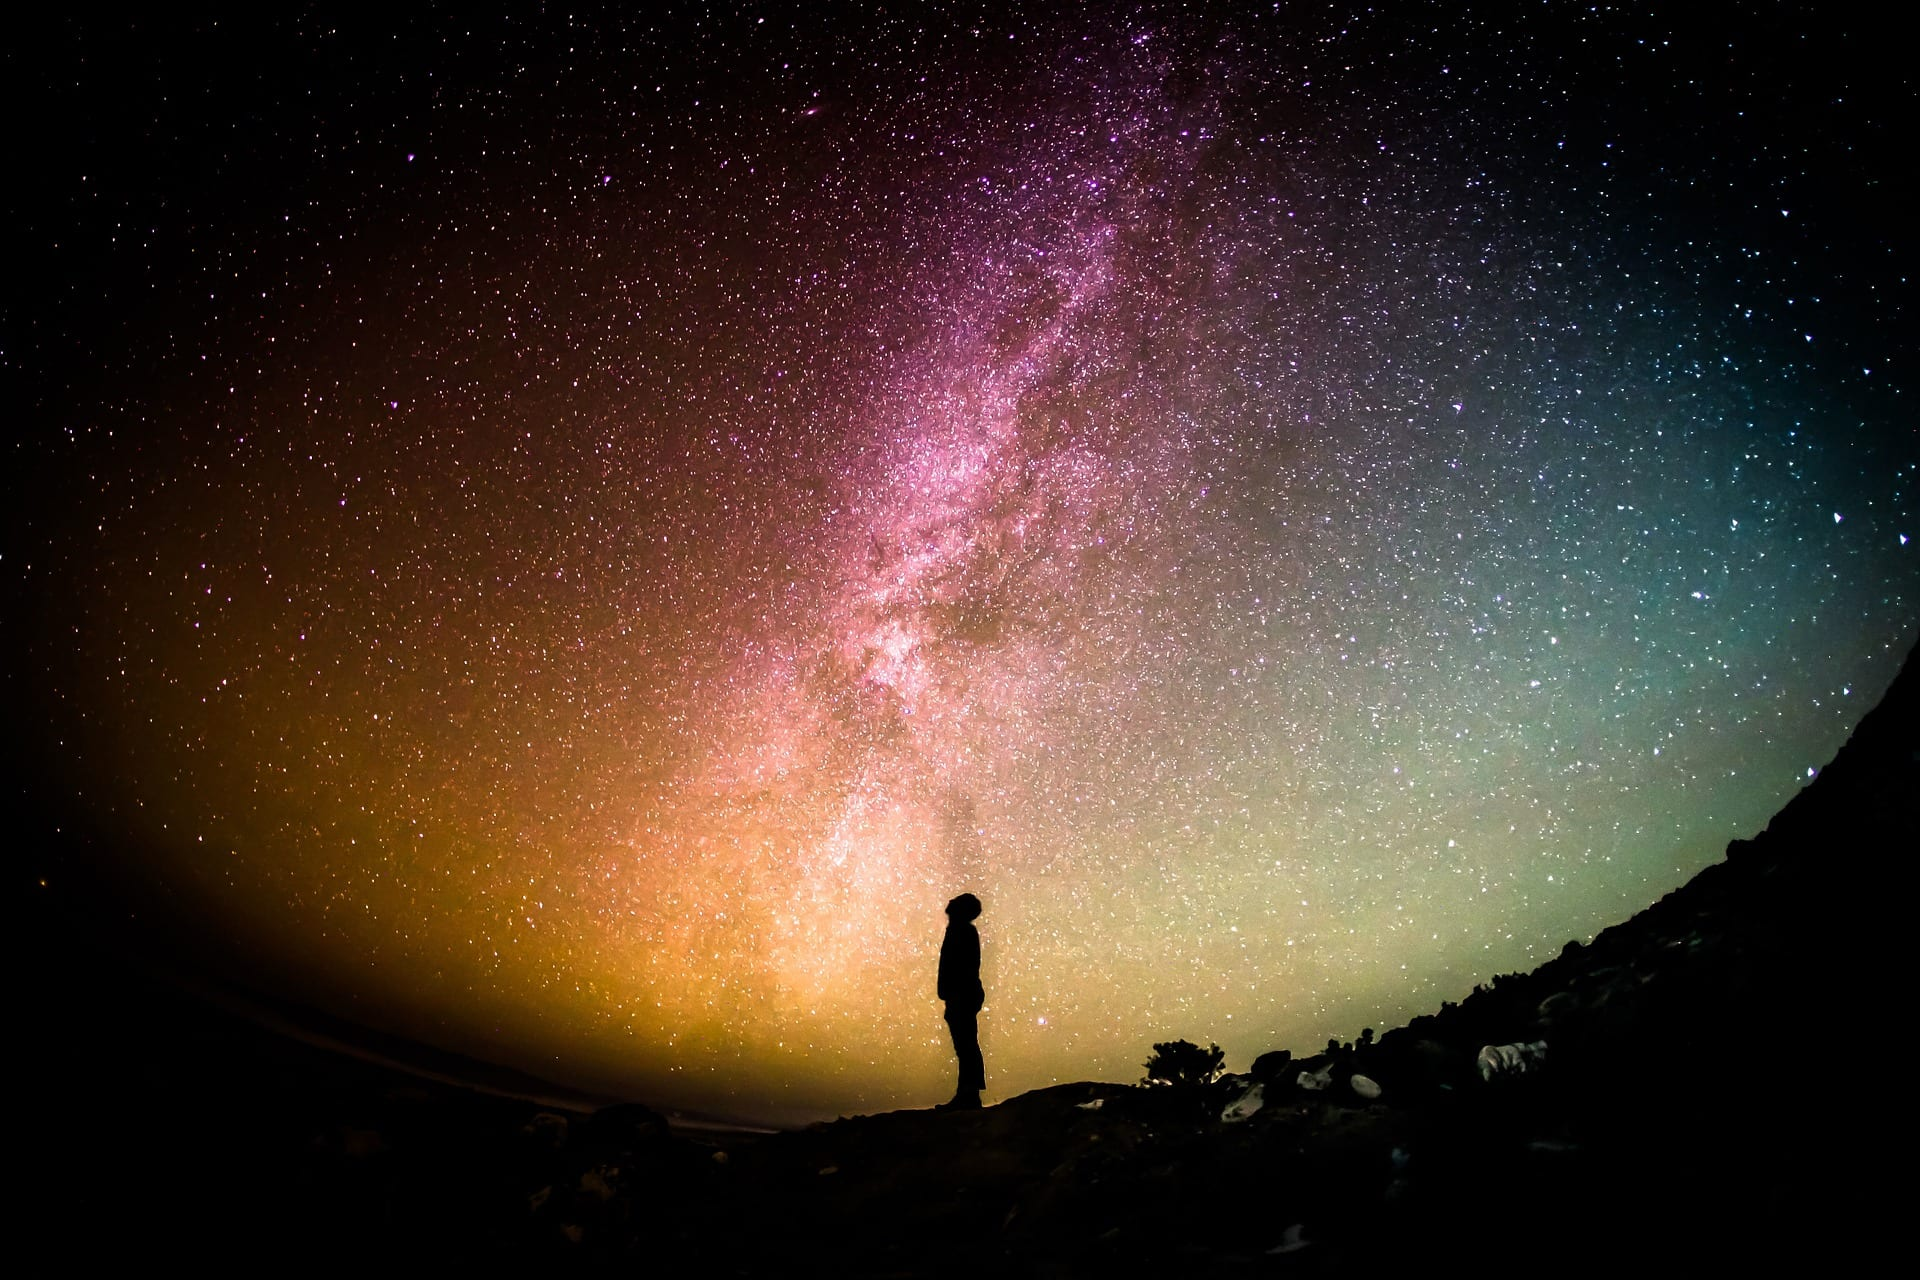 A man stands and looks up into a very starry sky.